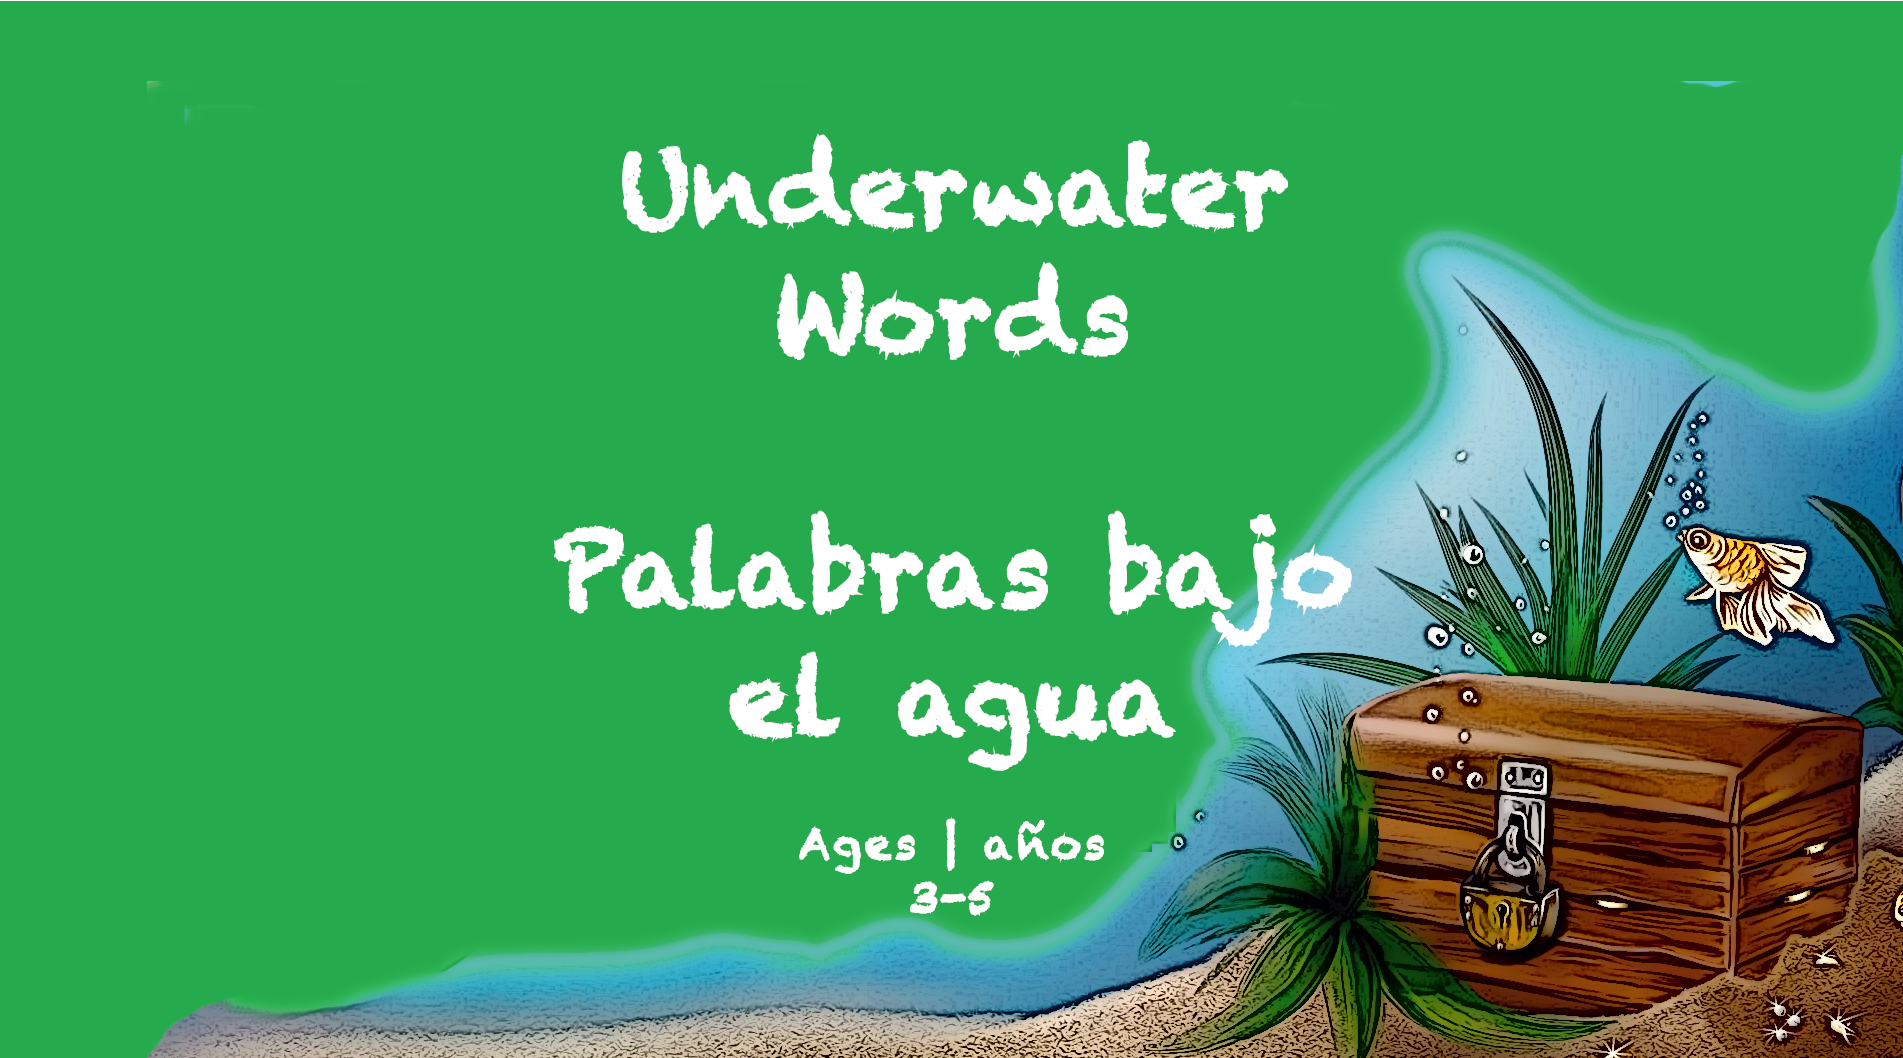 Weekly Themes Underwater Words BookSpring Ages 3 to 5